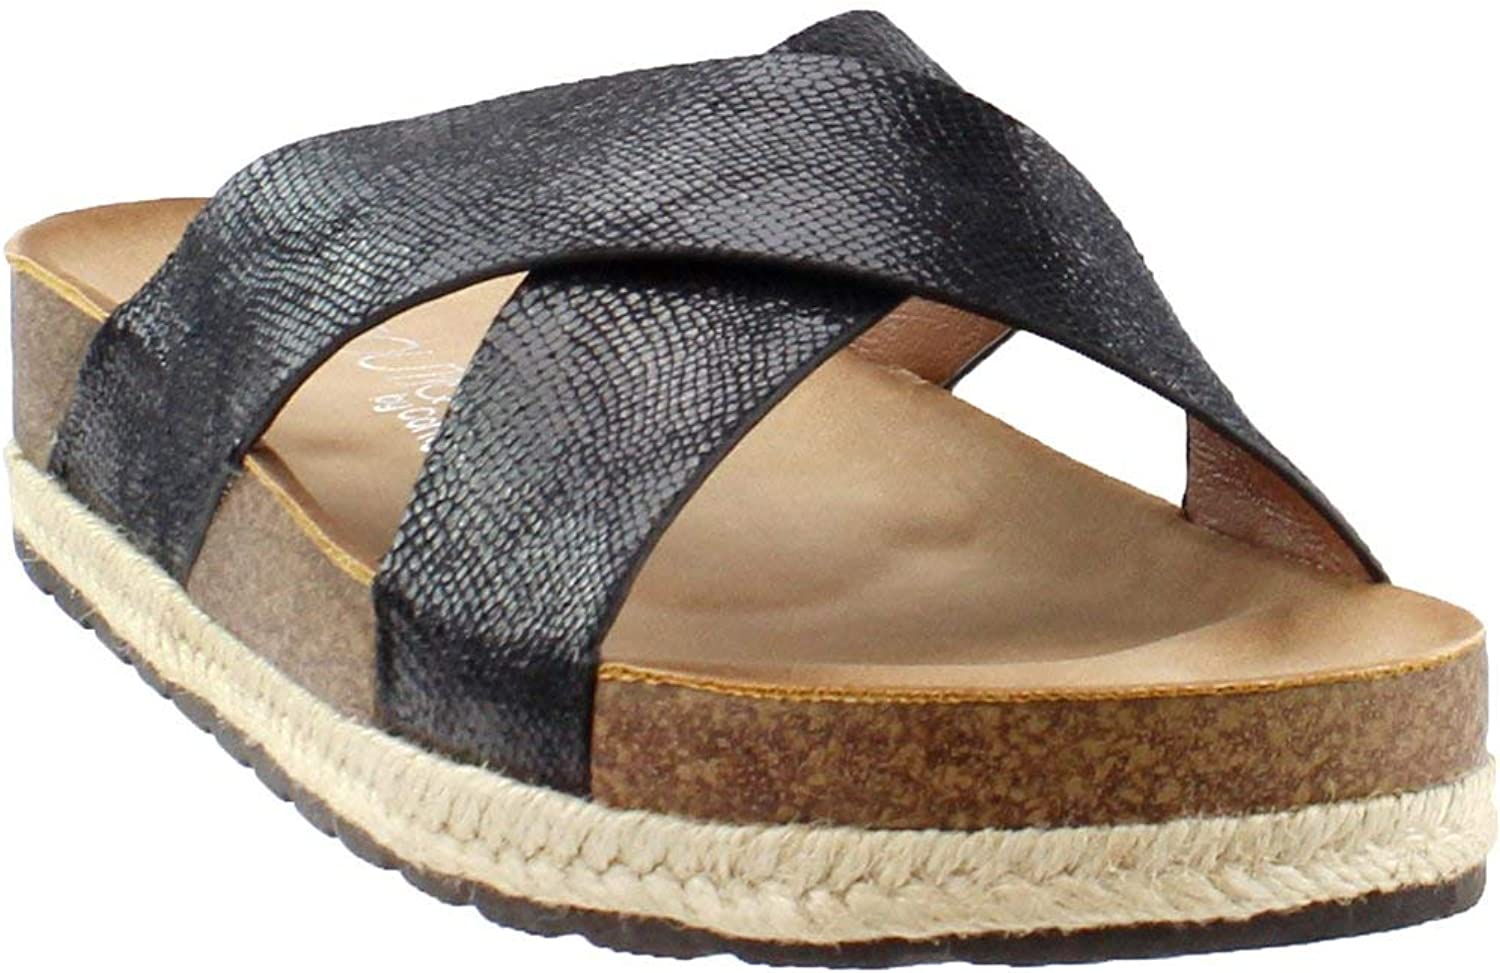 Corkys Footwear Womens Ladies Lizard Slide Sandals 8 Black